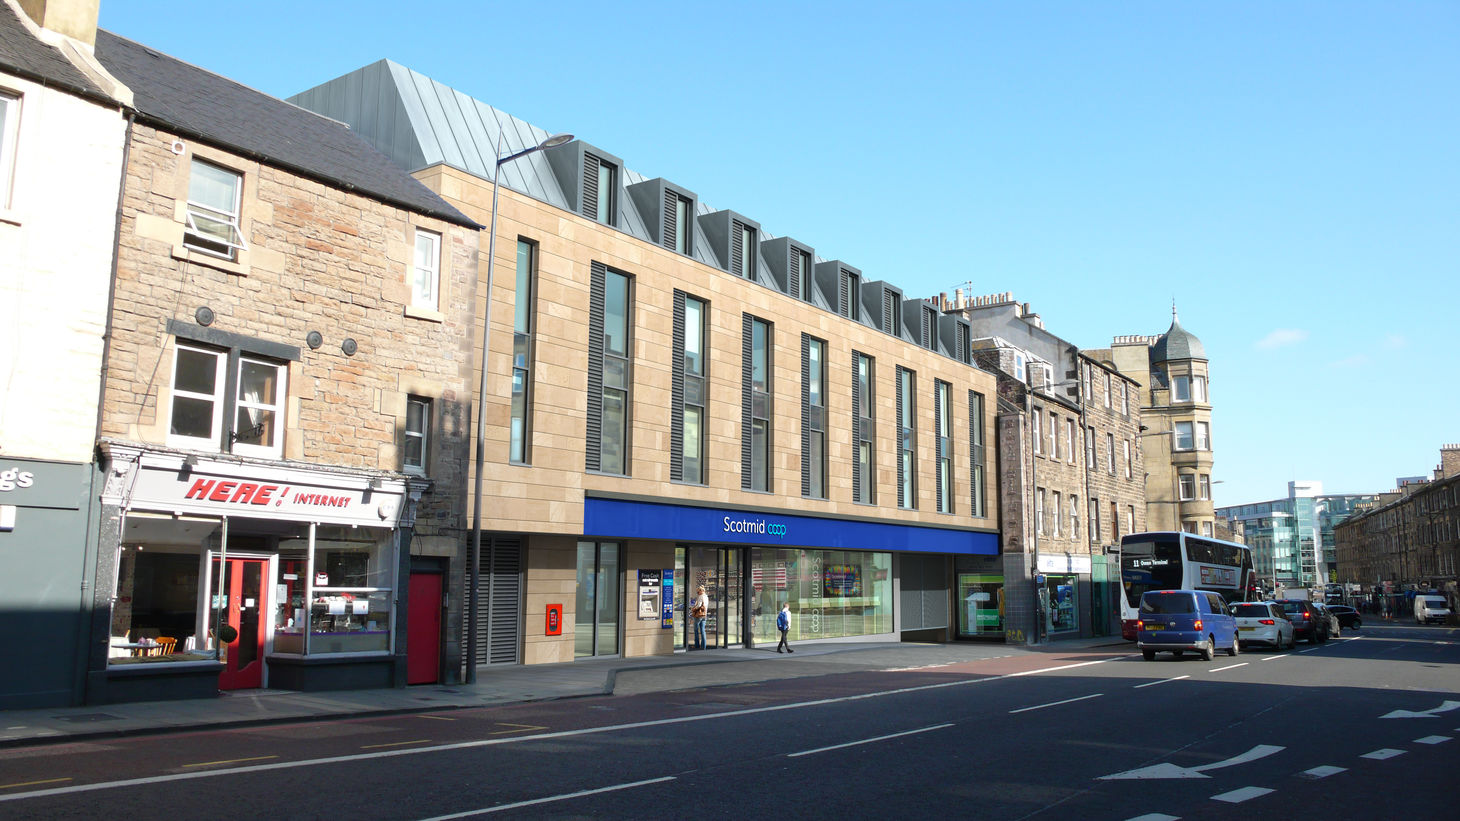 Planning permission granted and works commence on site at Leven Street image